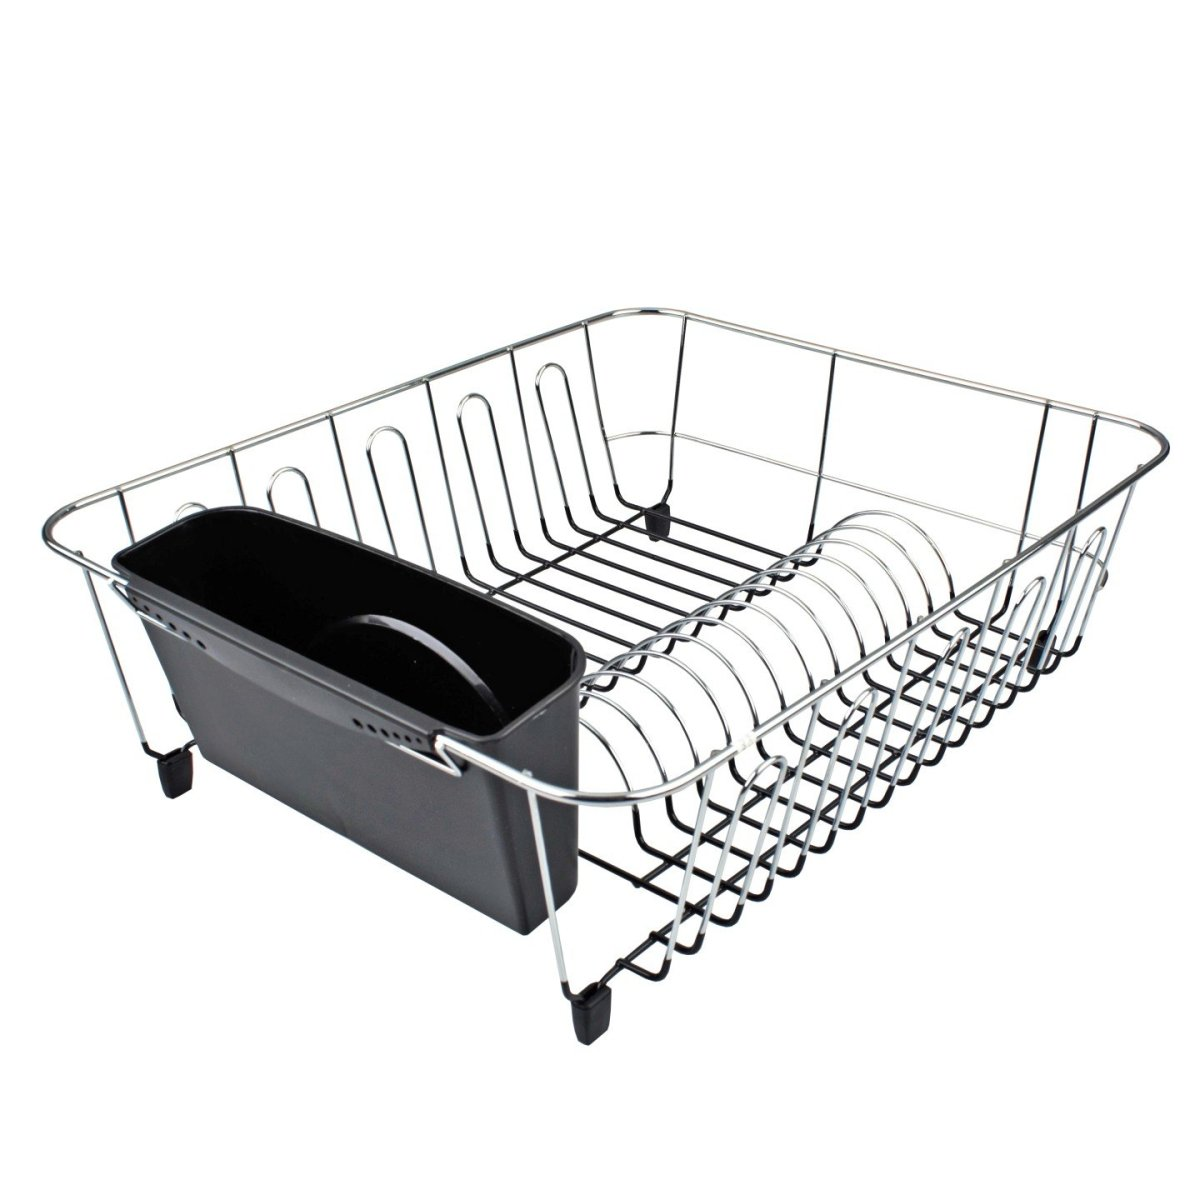 Large Black Dish Drainer with Caddy - Minimax